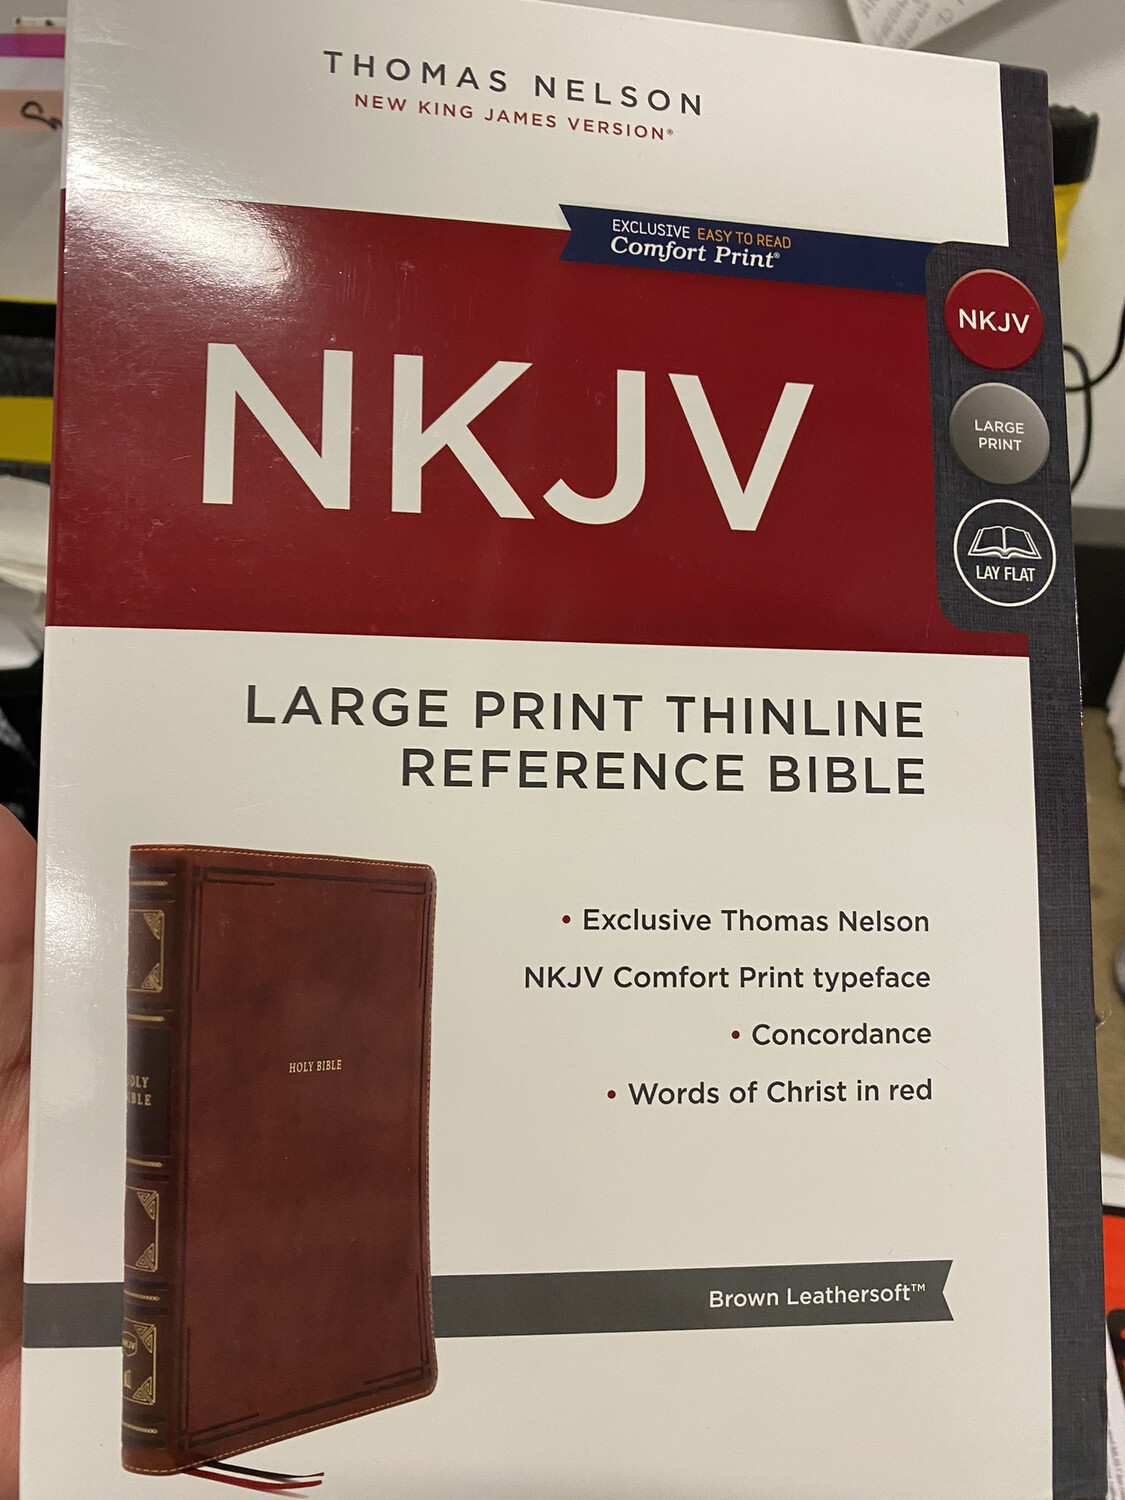 NKJV, Large Print Thinline Reference Bible, Brown Leathersoft